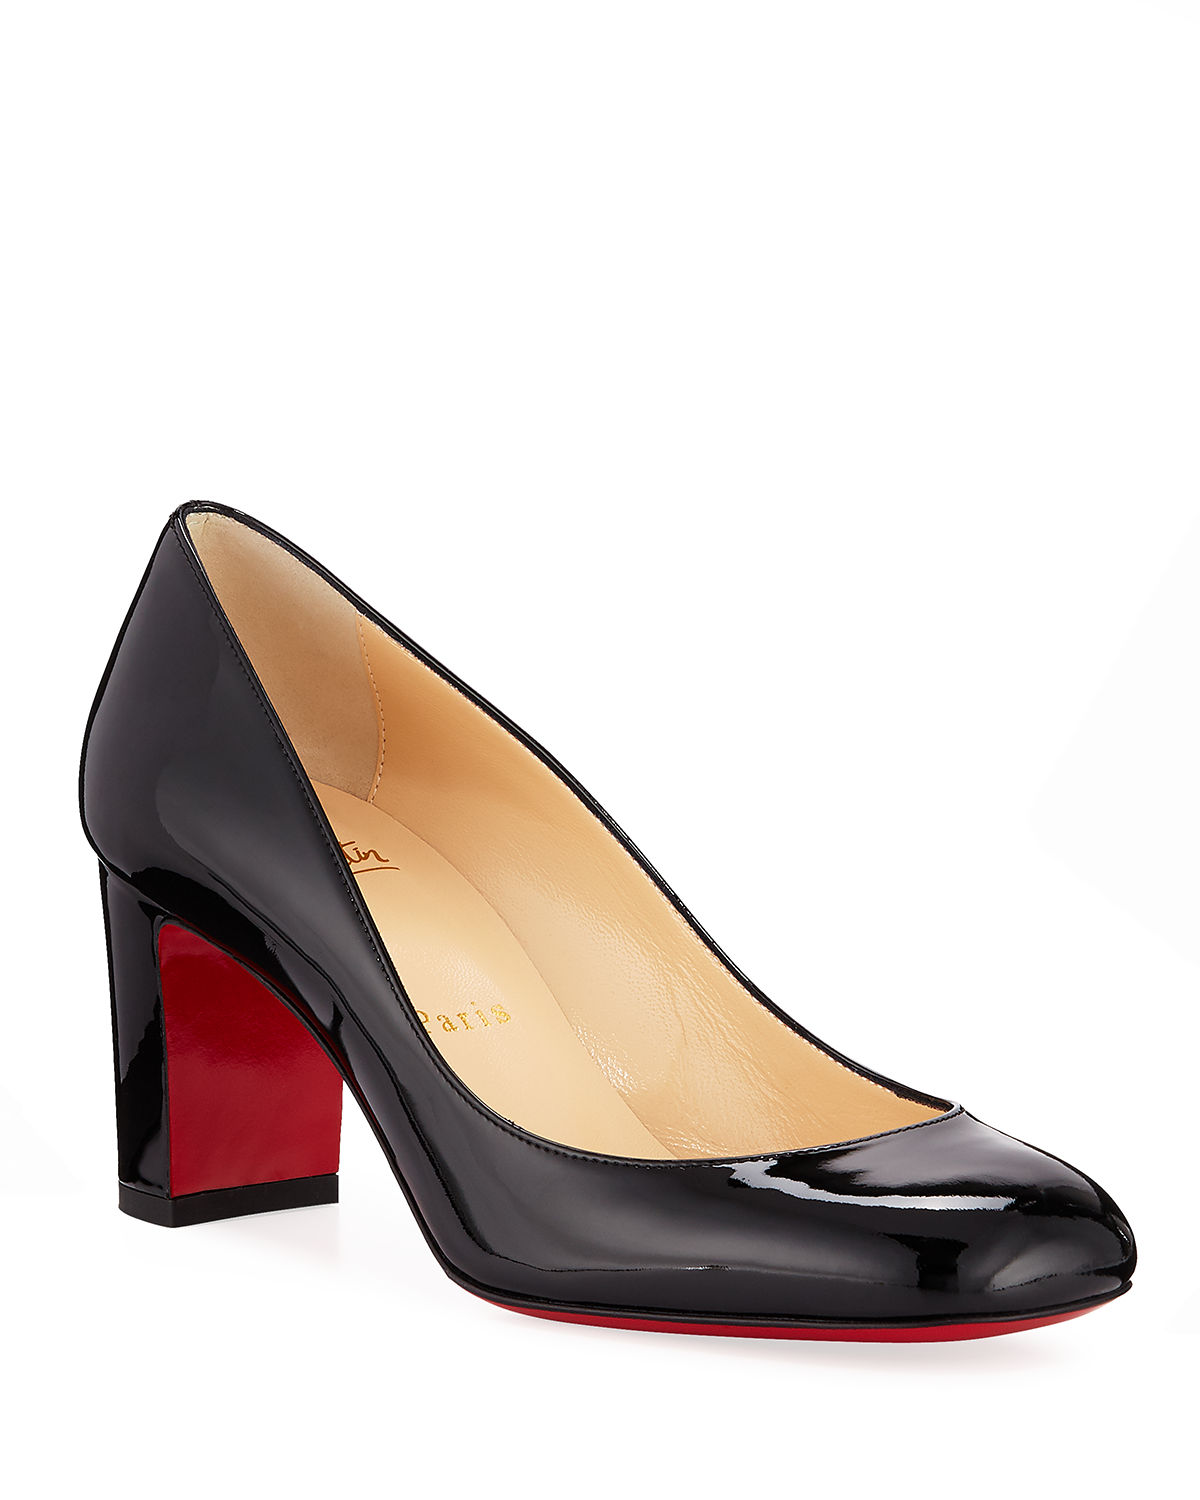 2222d9d4271 Christian Louboutin Cadrilla Patent Block-Heel Red Sole Pump ...